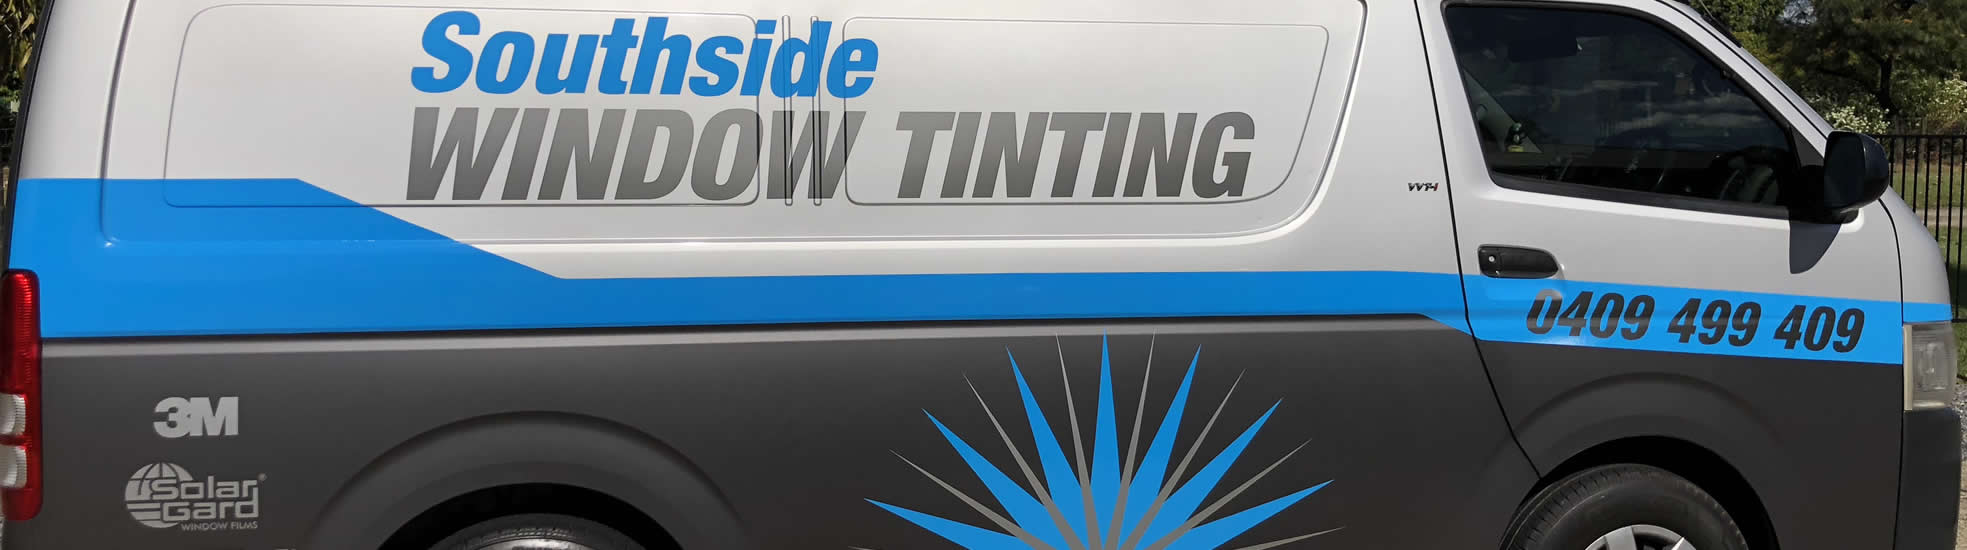 Southside Window Tinting come to you